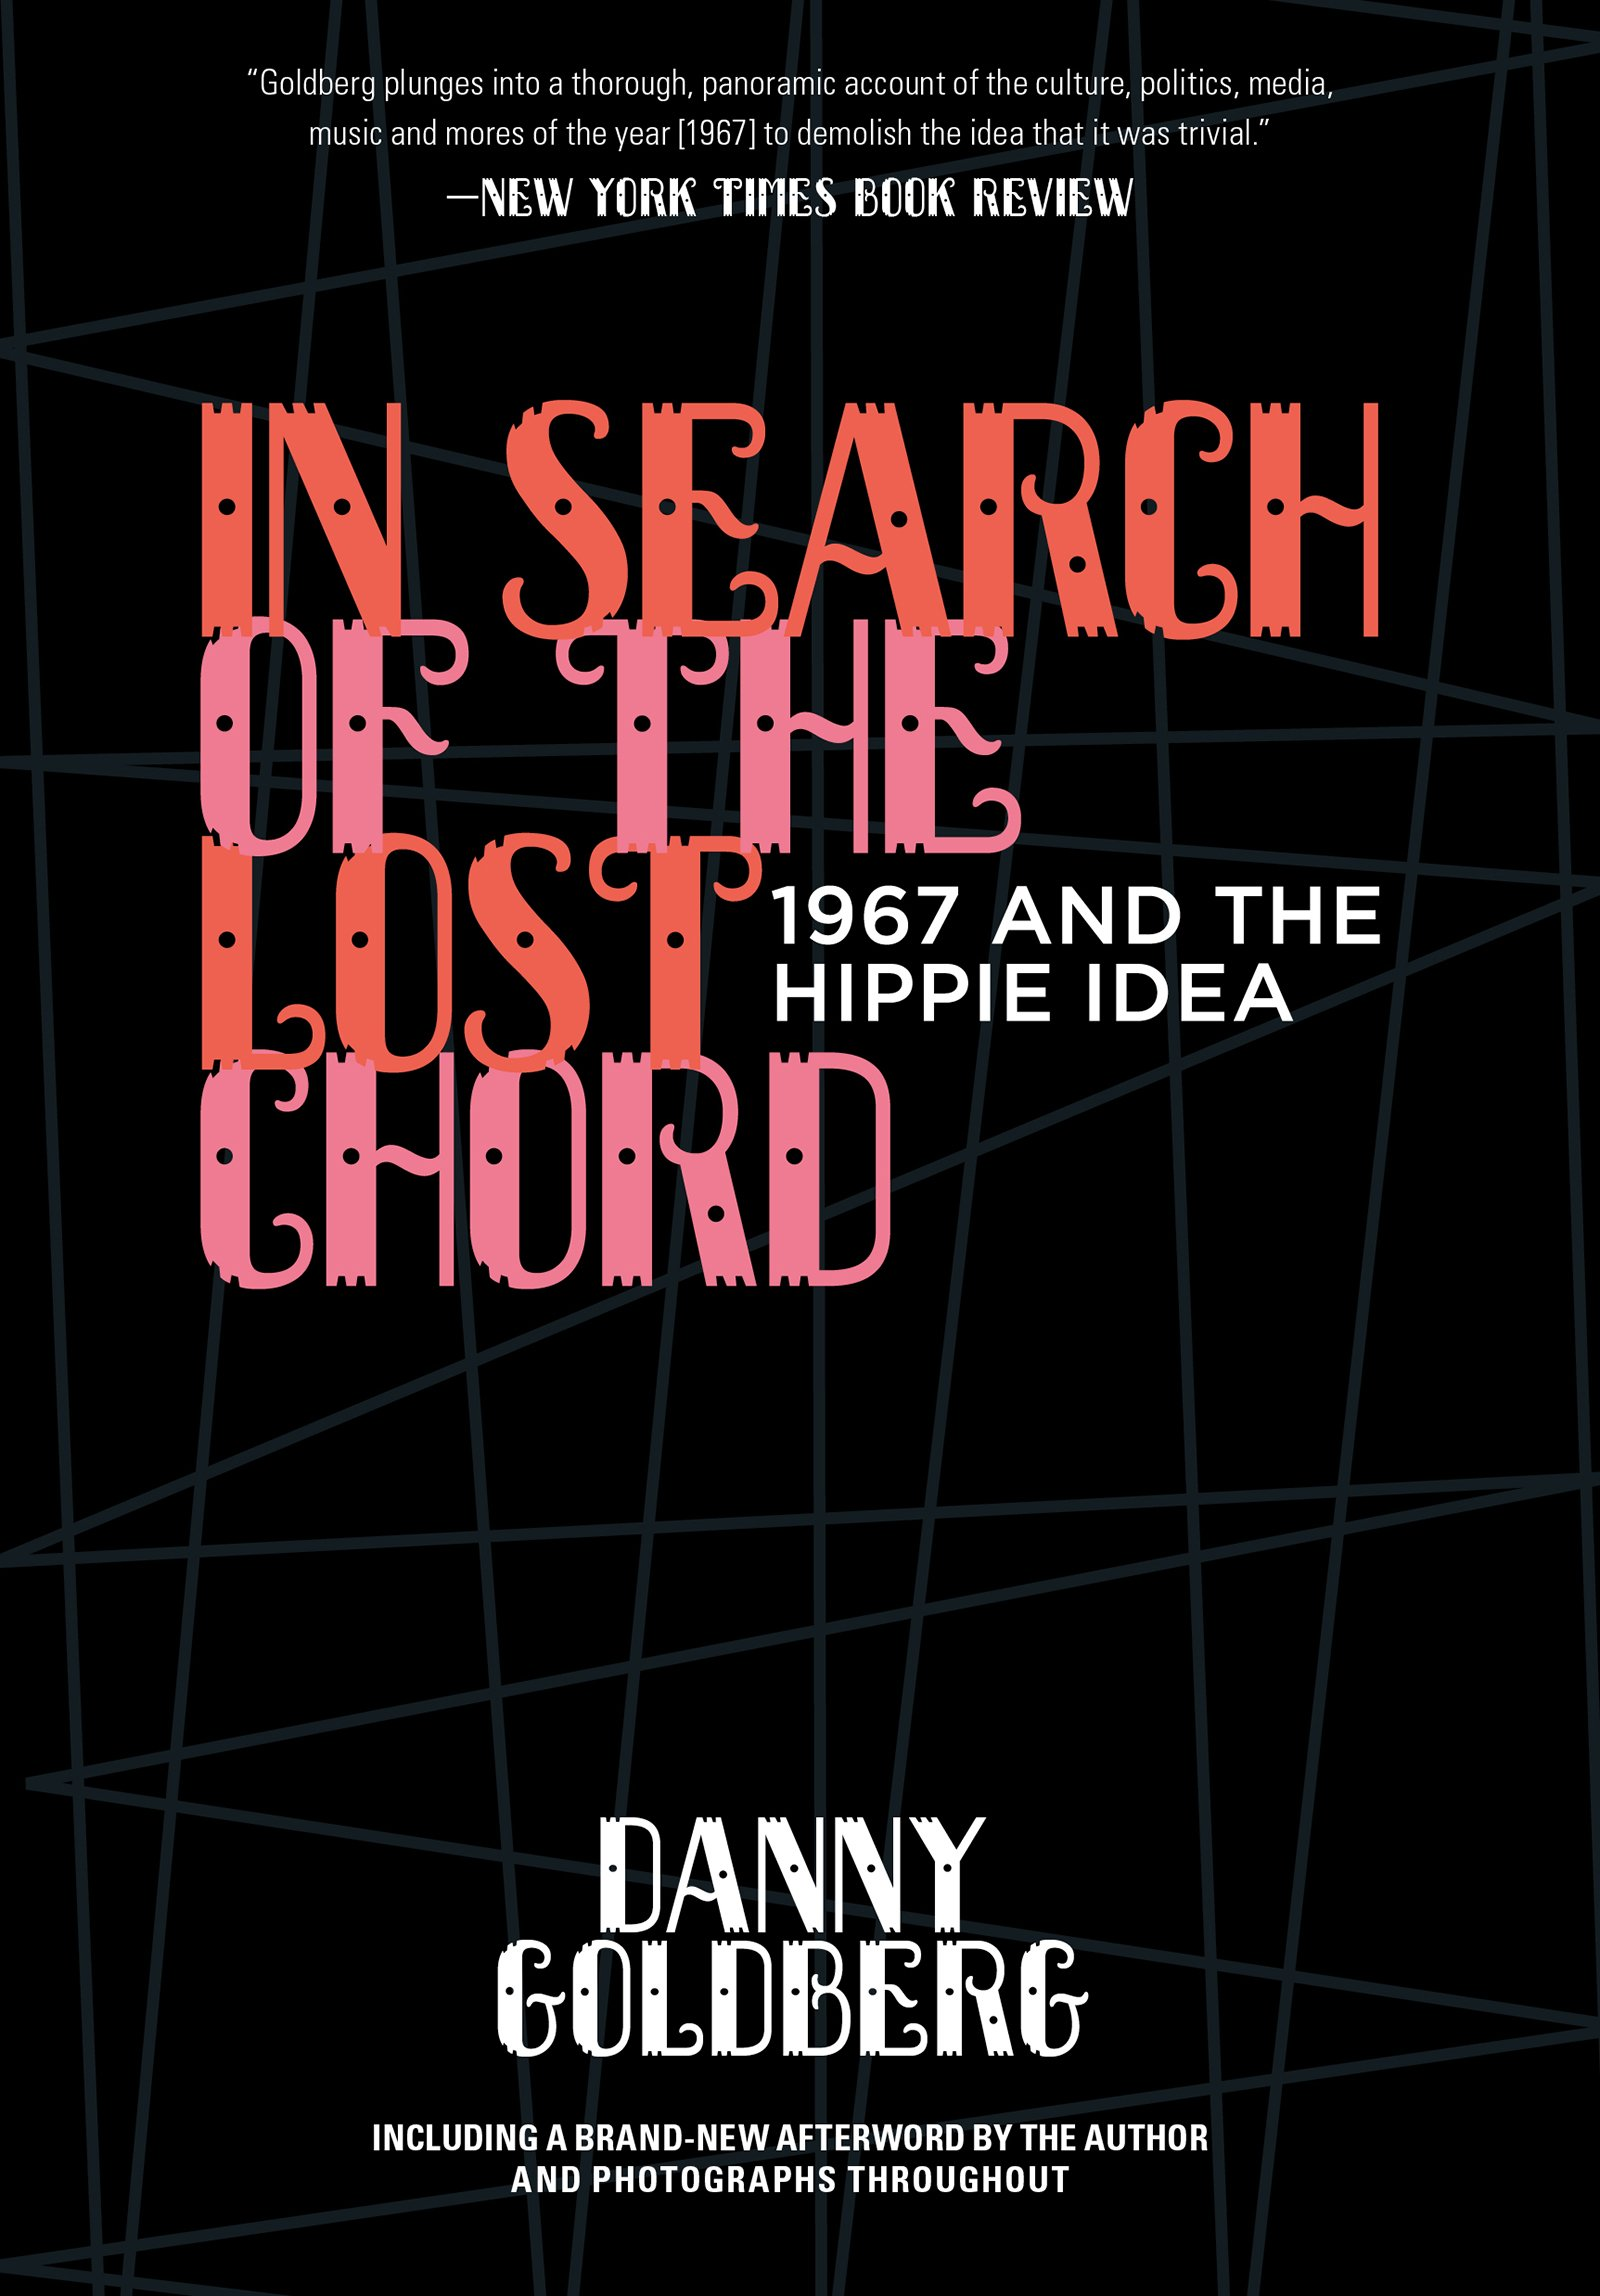 In Search Of The Lost Chord 1967 And The Hippie Idea Danny